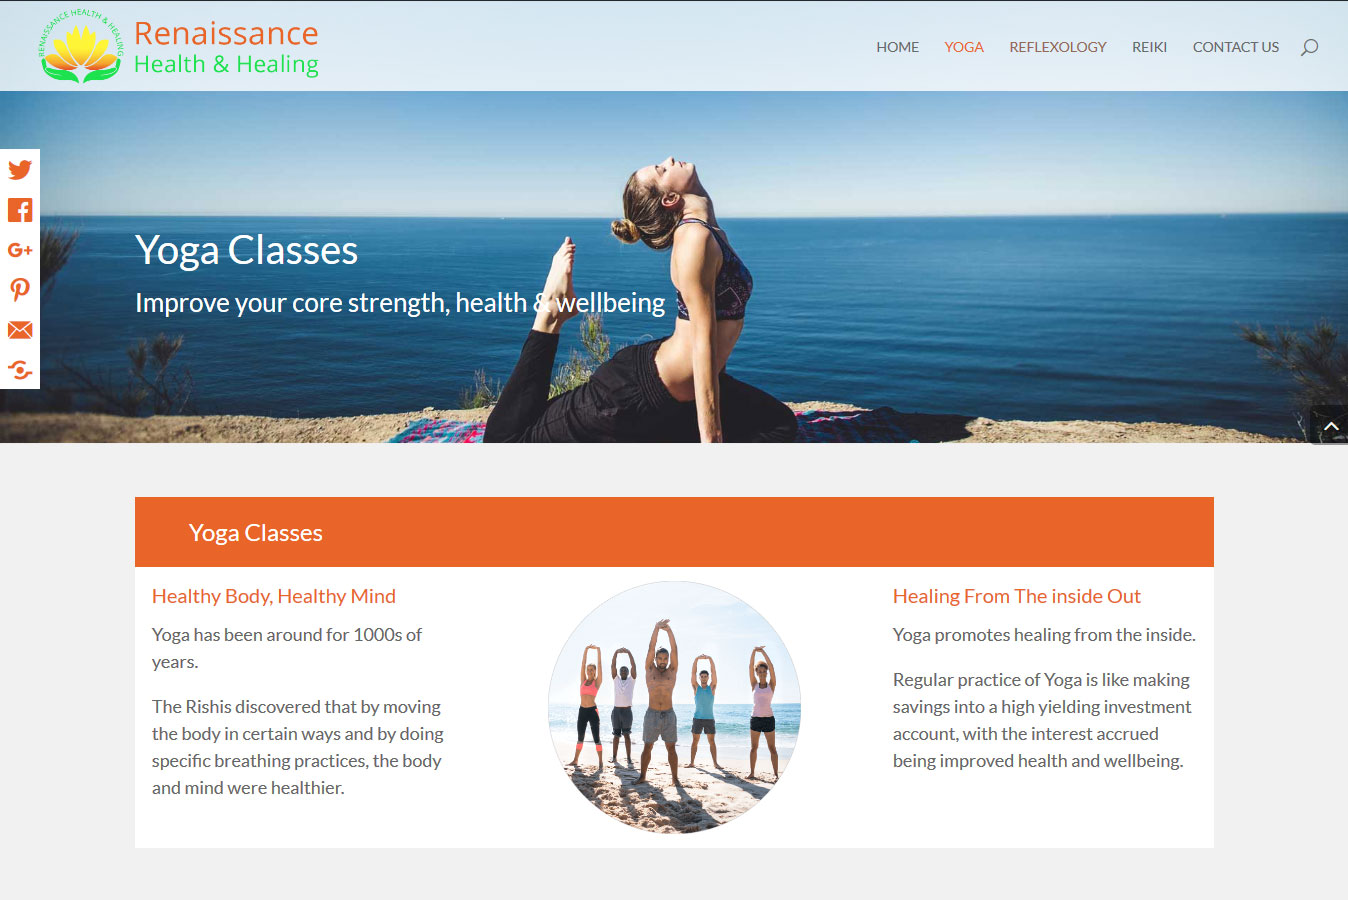 Mobile Friendly Website - Yoga page banner image and floating social media share buttons